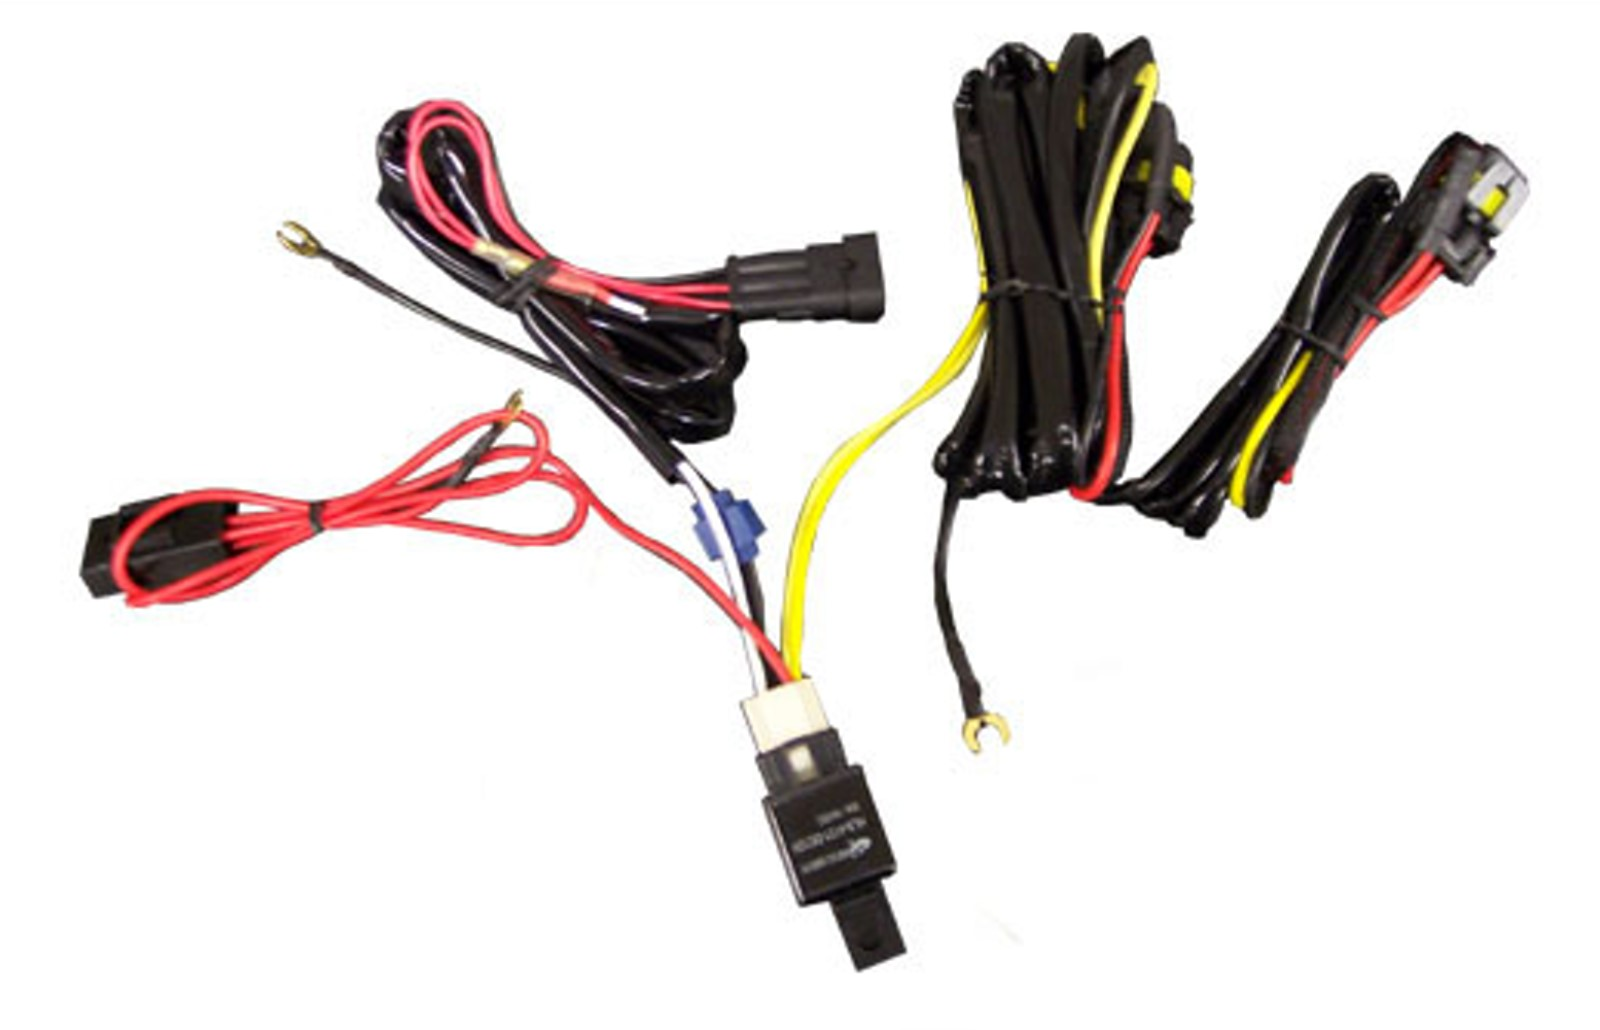 wiring harness kit for atv eagle eye lights 320hid wiring harness for atv utv hid light kits  eagle eye lights 320hid wiring harness